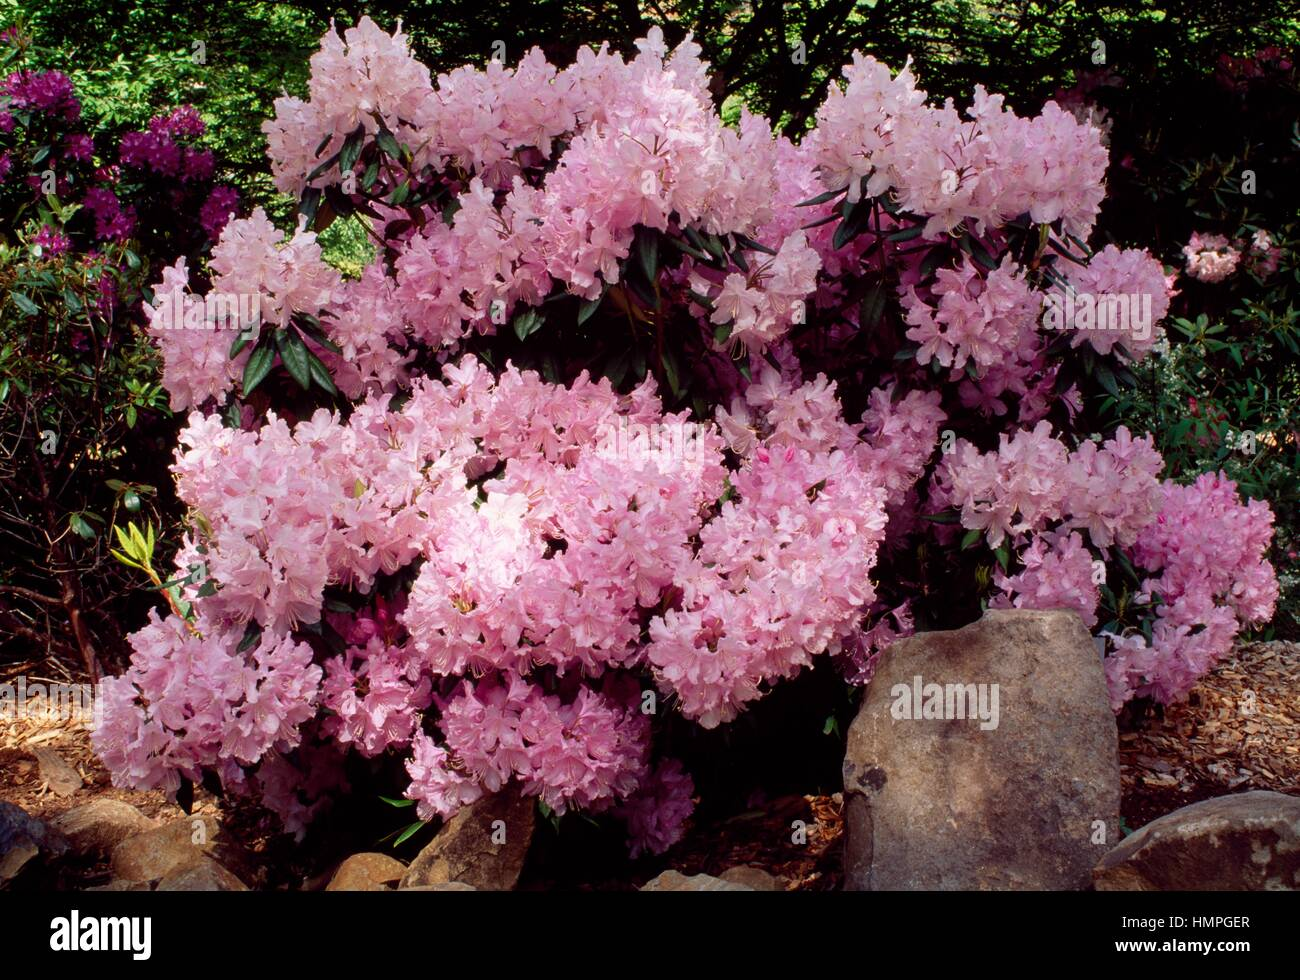 Rhododendron (Rhododendron Mrs EC Stirling), Ericaceae. - Stock Image